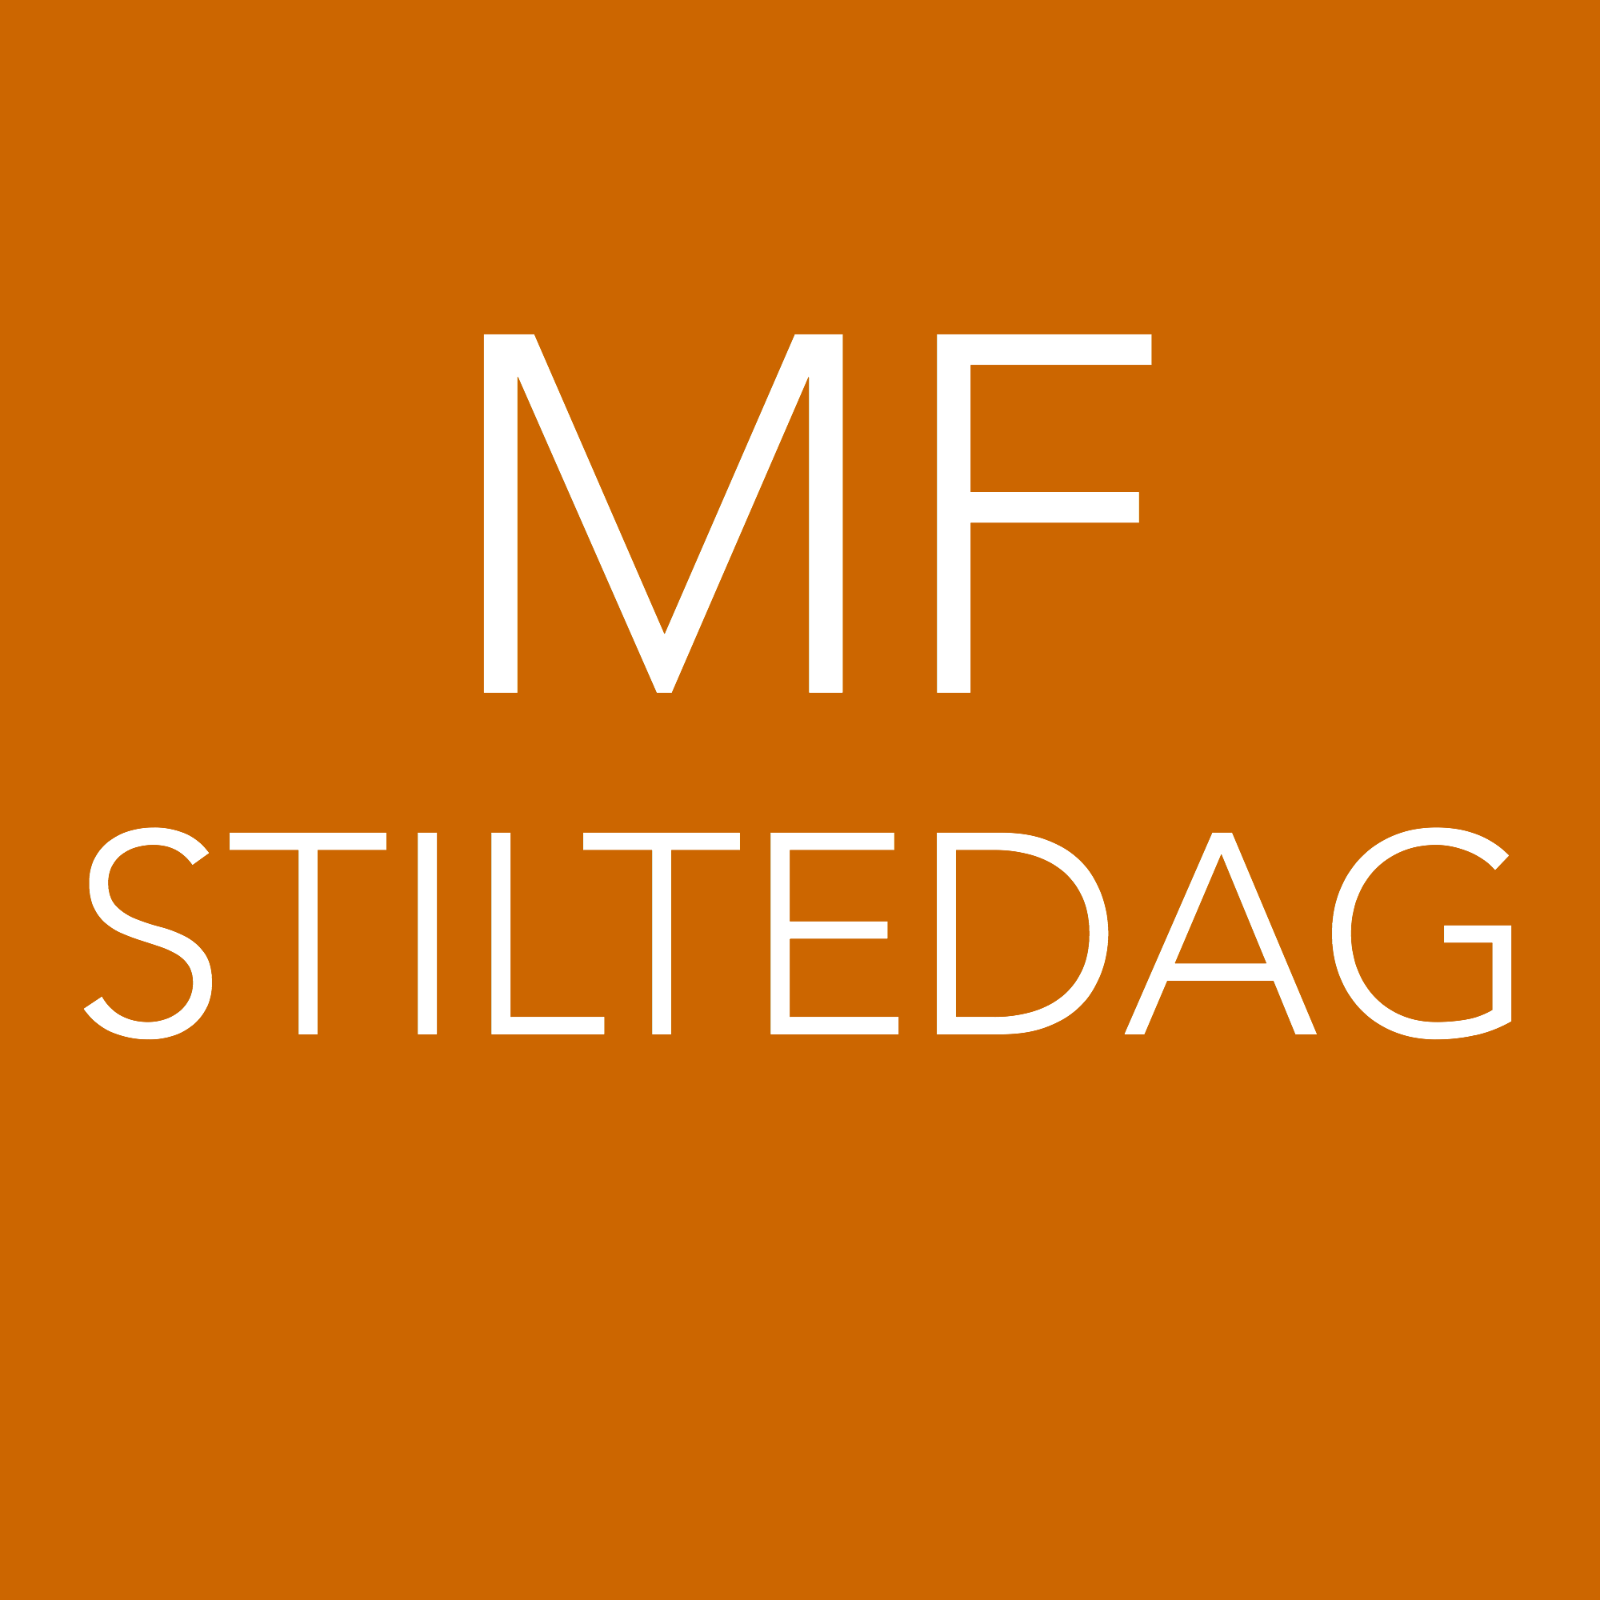 [MF-STD] Stiltedag 17 februari 2018